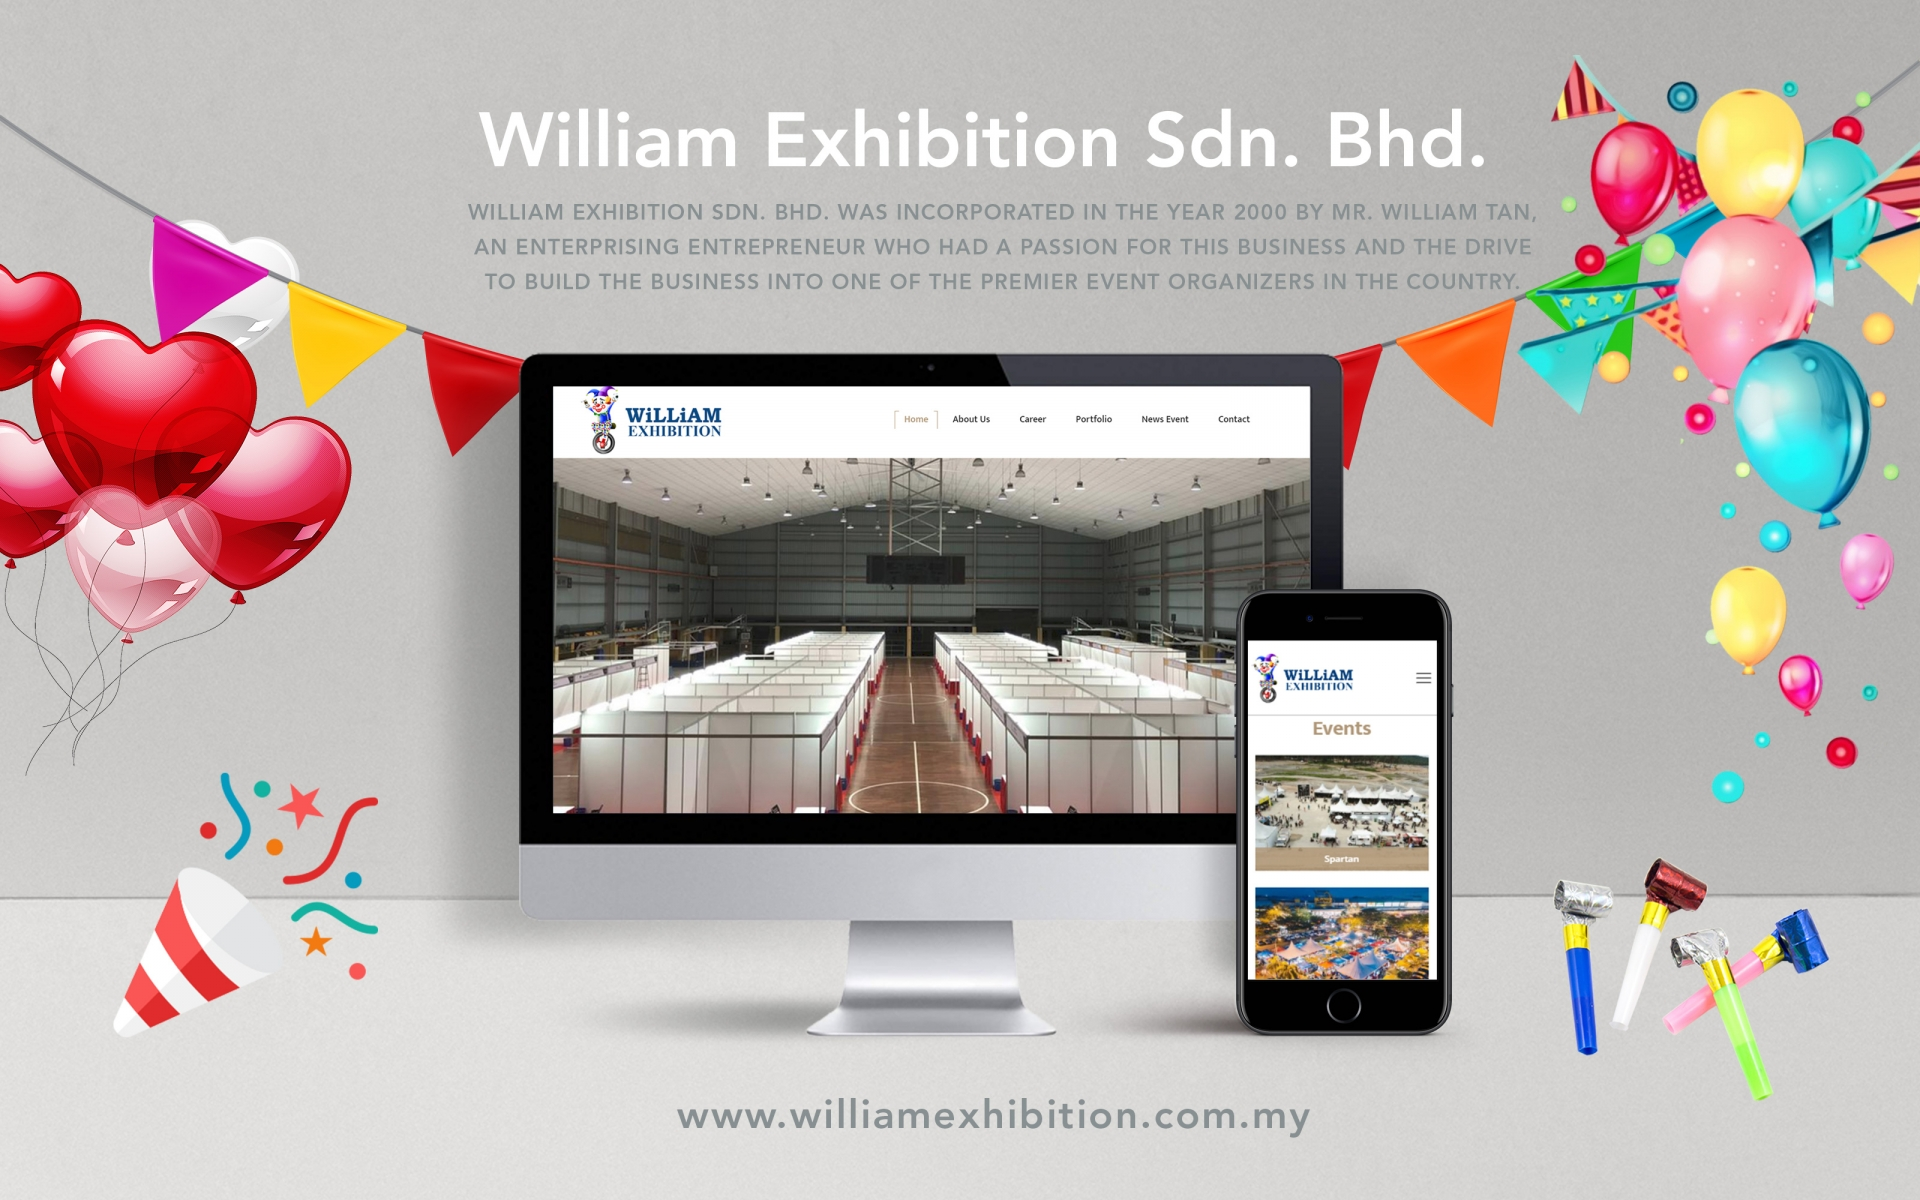 "<a href=""http://welcome.williamexhibition.com.my"" target=""_blank"">William Exhibition Sdn. Bhd.</a>"